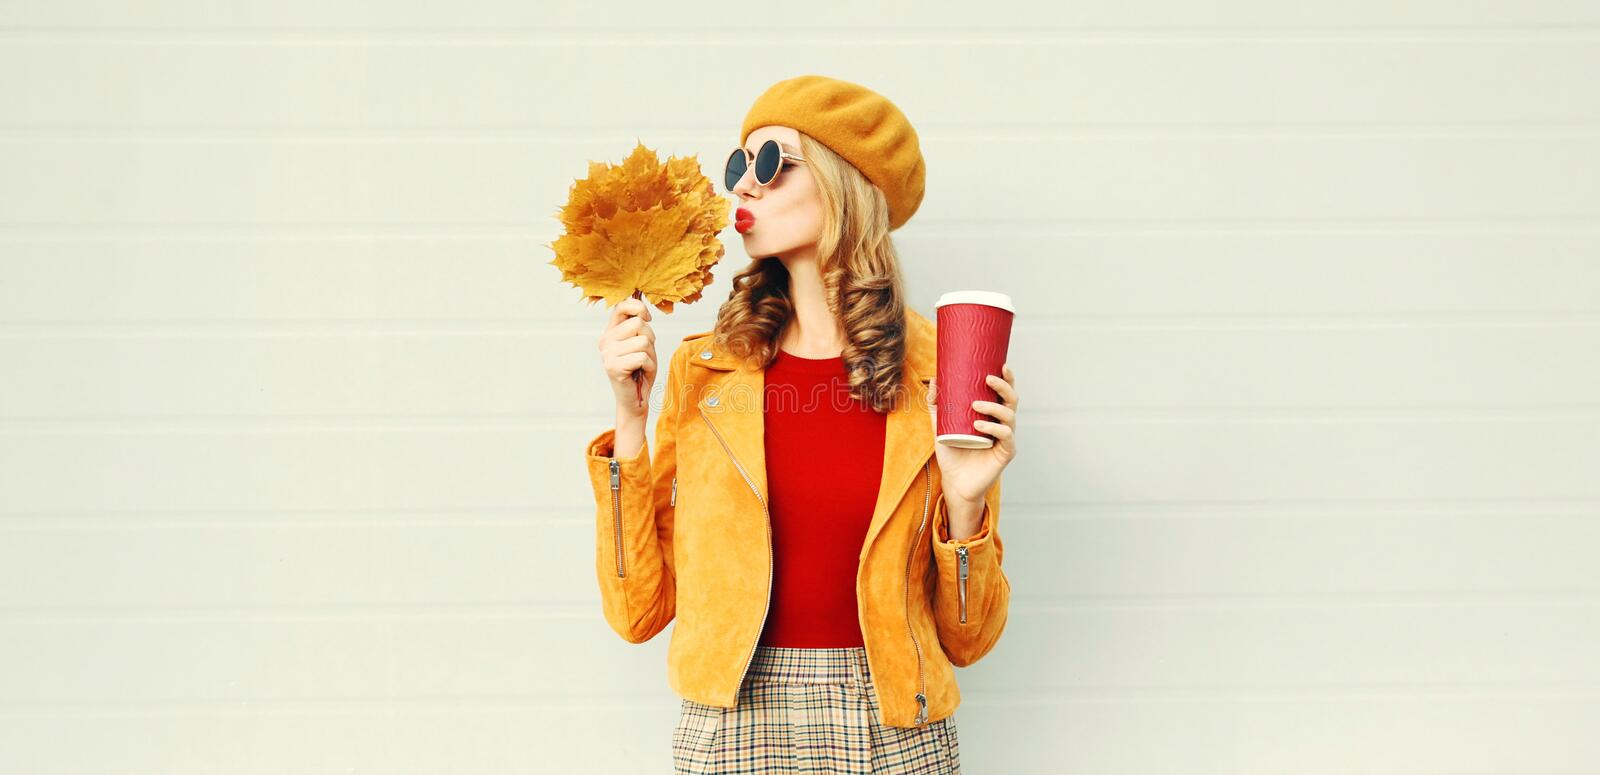 Autumn portrait woman with yellow maple leaves, coffee cup blowing red lips sending sweet air kiss over gray wall royalty free stock image